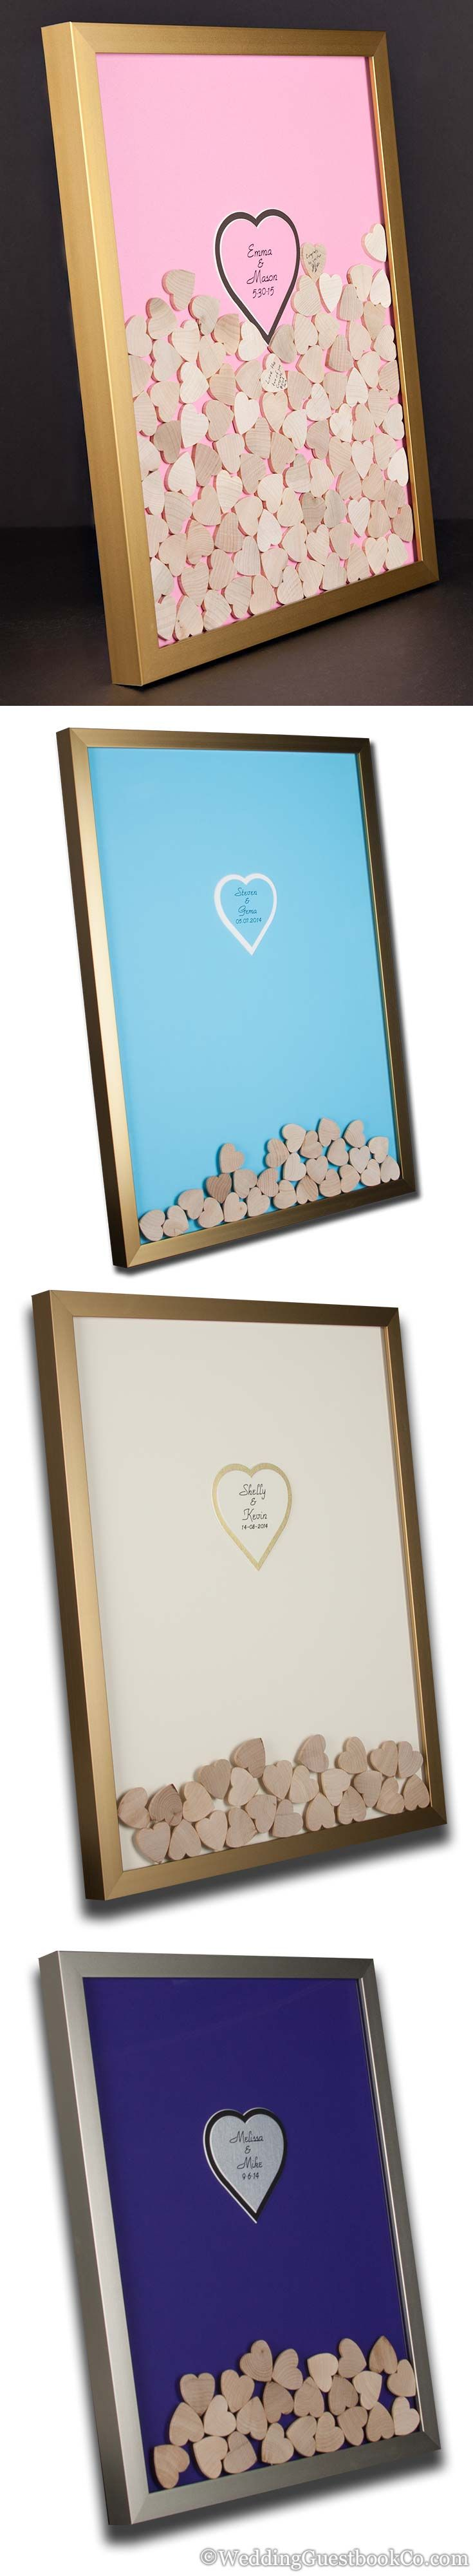 Wood heart wedding guest book shadowbox frames. Personalized inscription, frame style, frame color, center color, shapes and background. By WeddingGuestbookCo.com